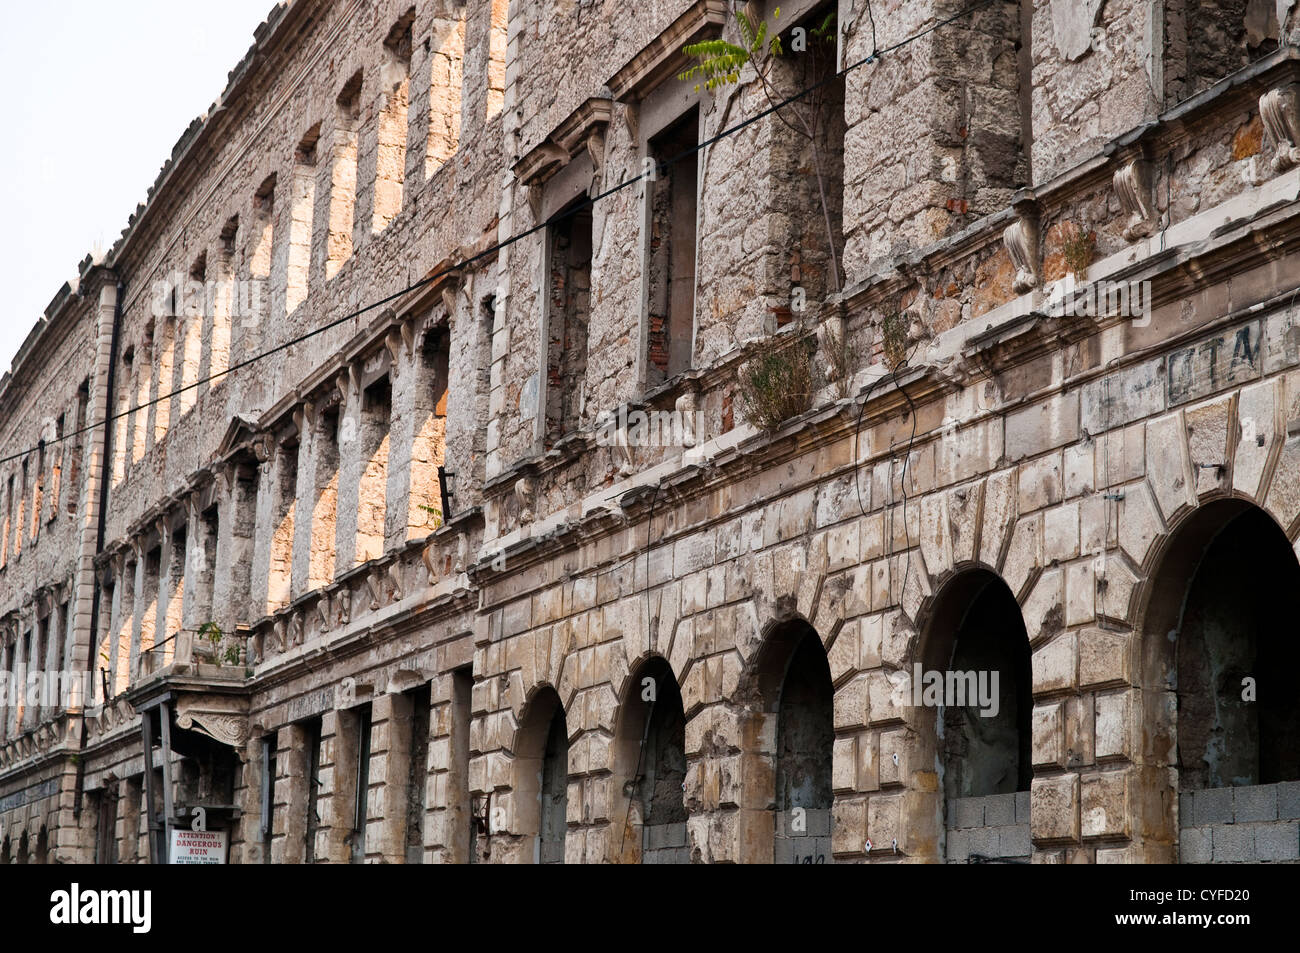 Building destroyed in the war 20 years ago, Mostar, Bosnia and Herzegovina - Stock Image